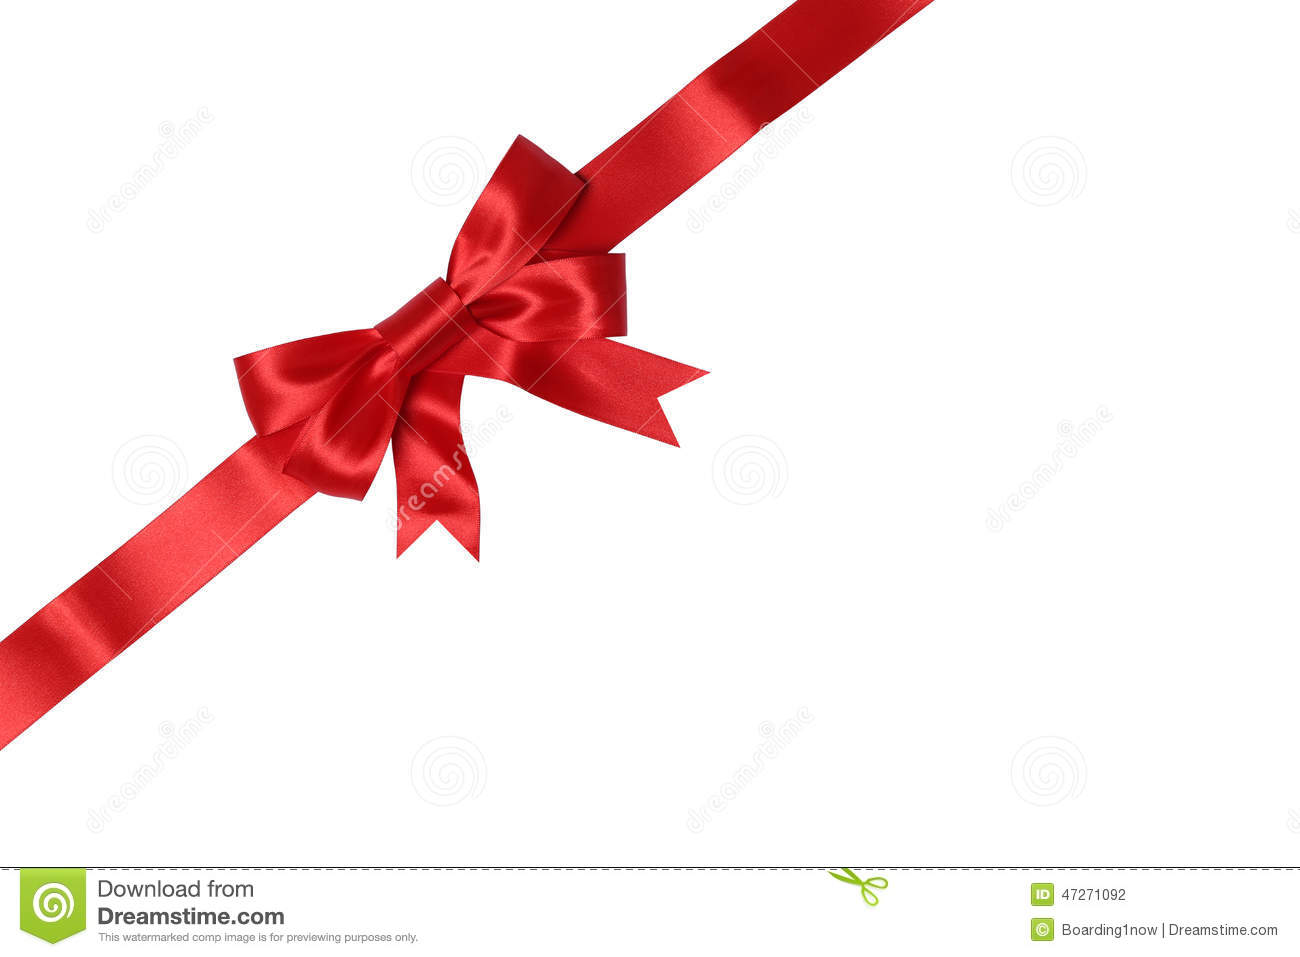 Envelope Or Card On Gift With Bow For Gifts On Christmas